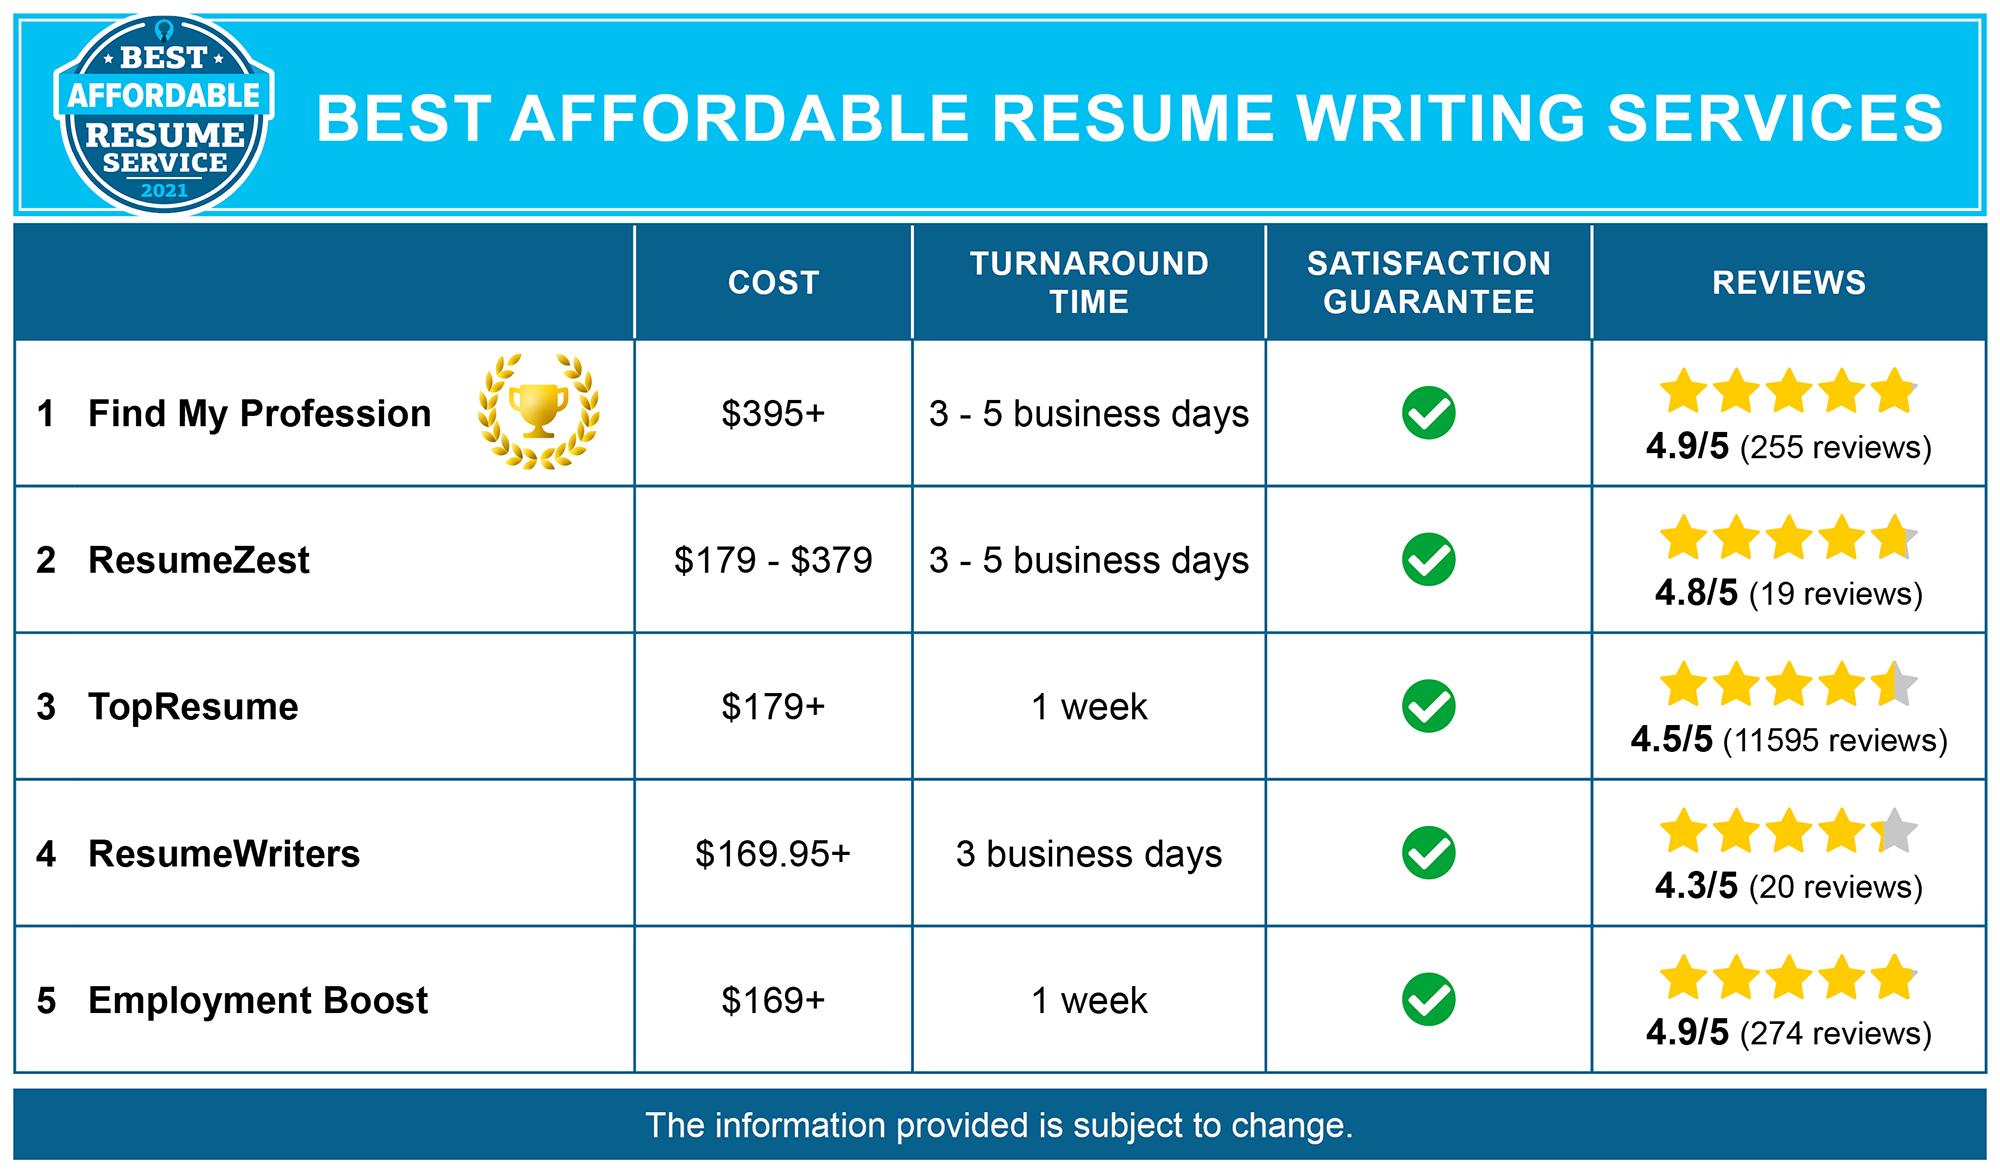 Best Affordable Resume Writing Services